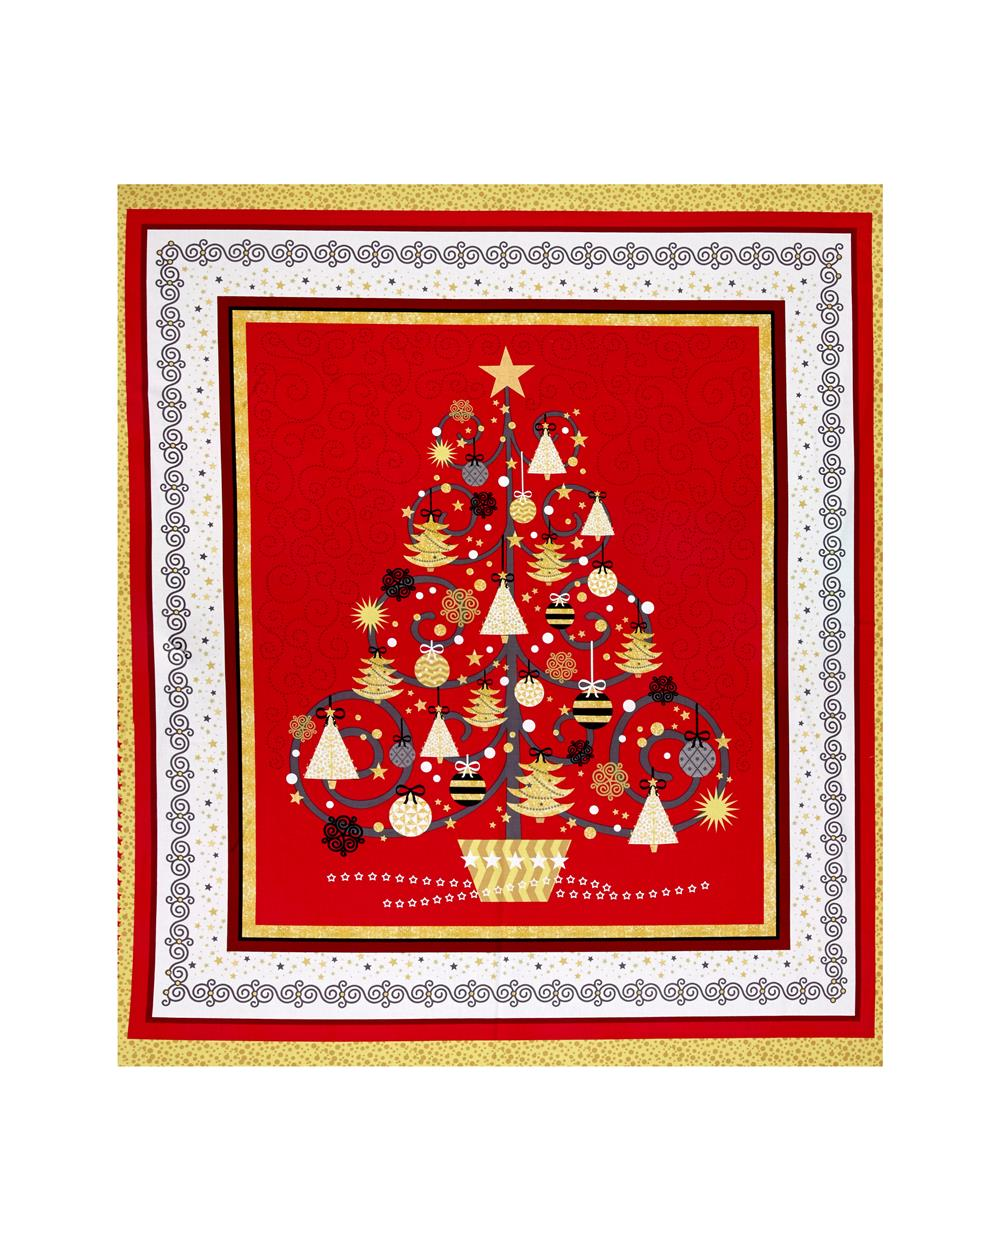 All That Glitters Metallic Christmas Tree 36 In. Panel Red